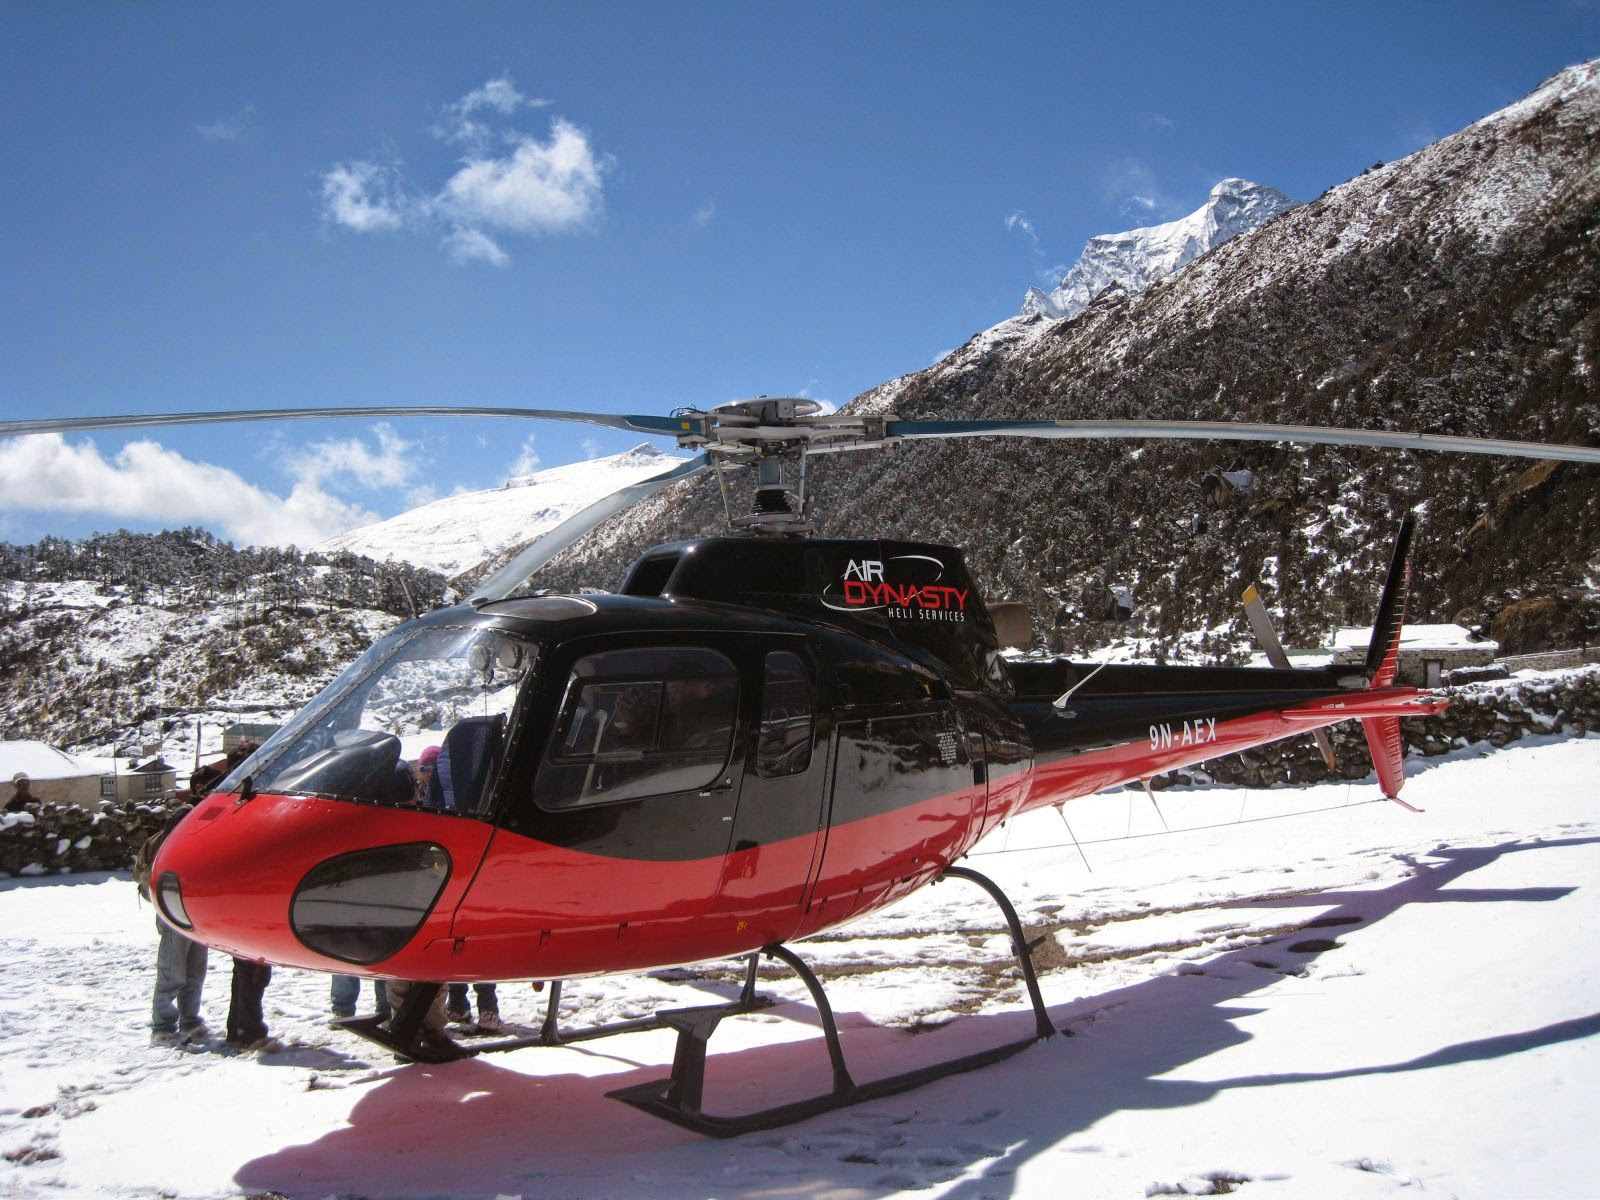 helicopter rescue services in nepal